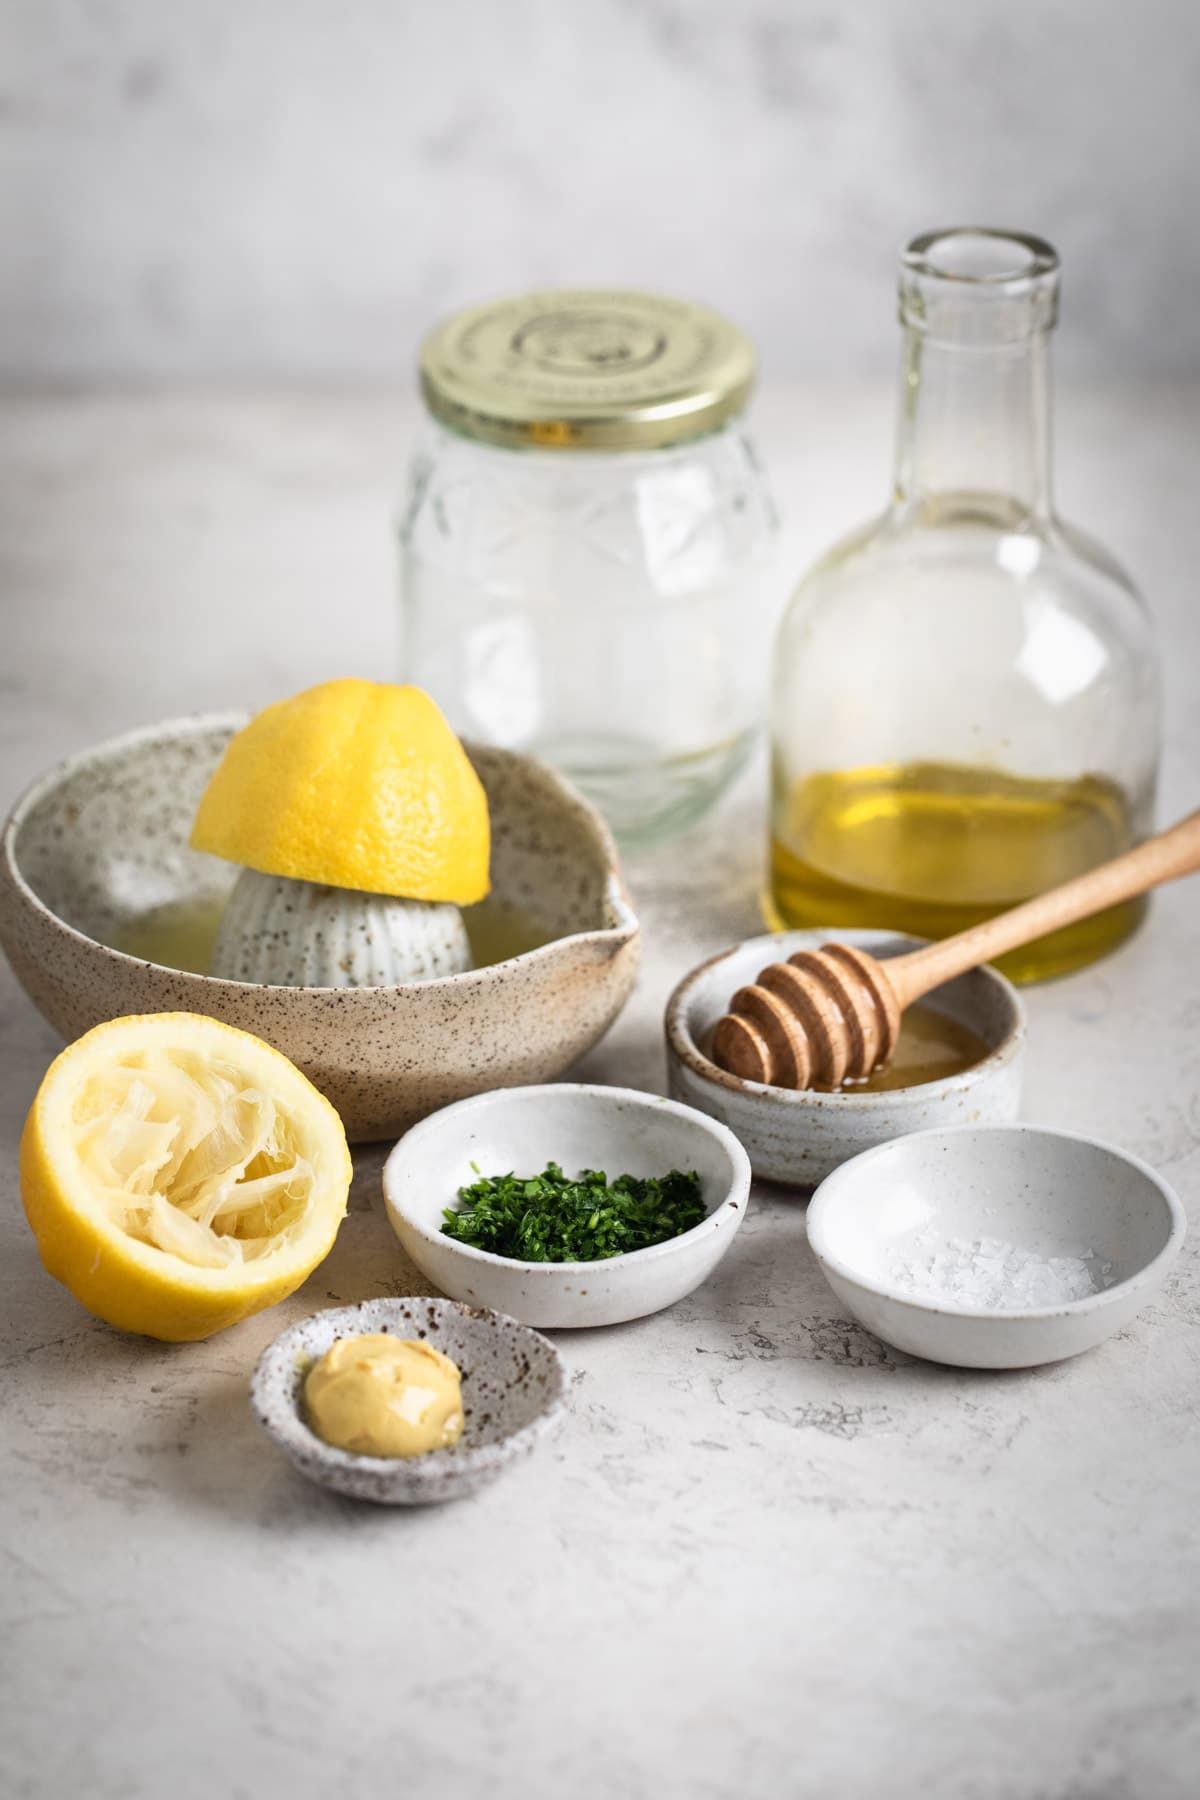 ingredients laid out for lemon herb dressing